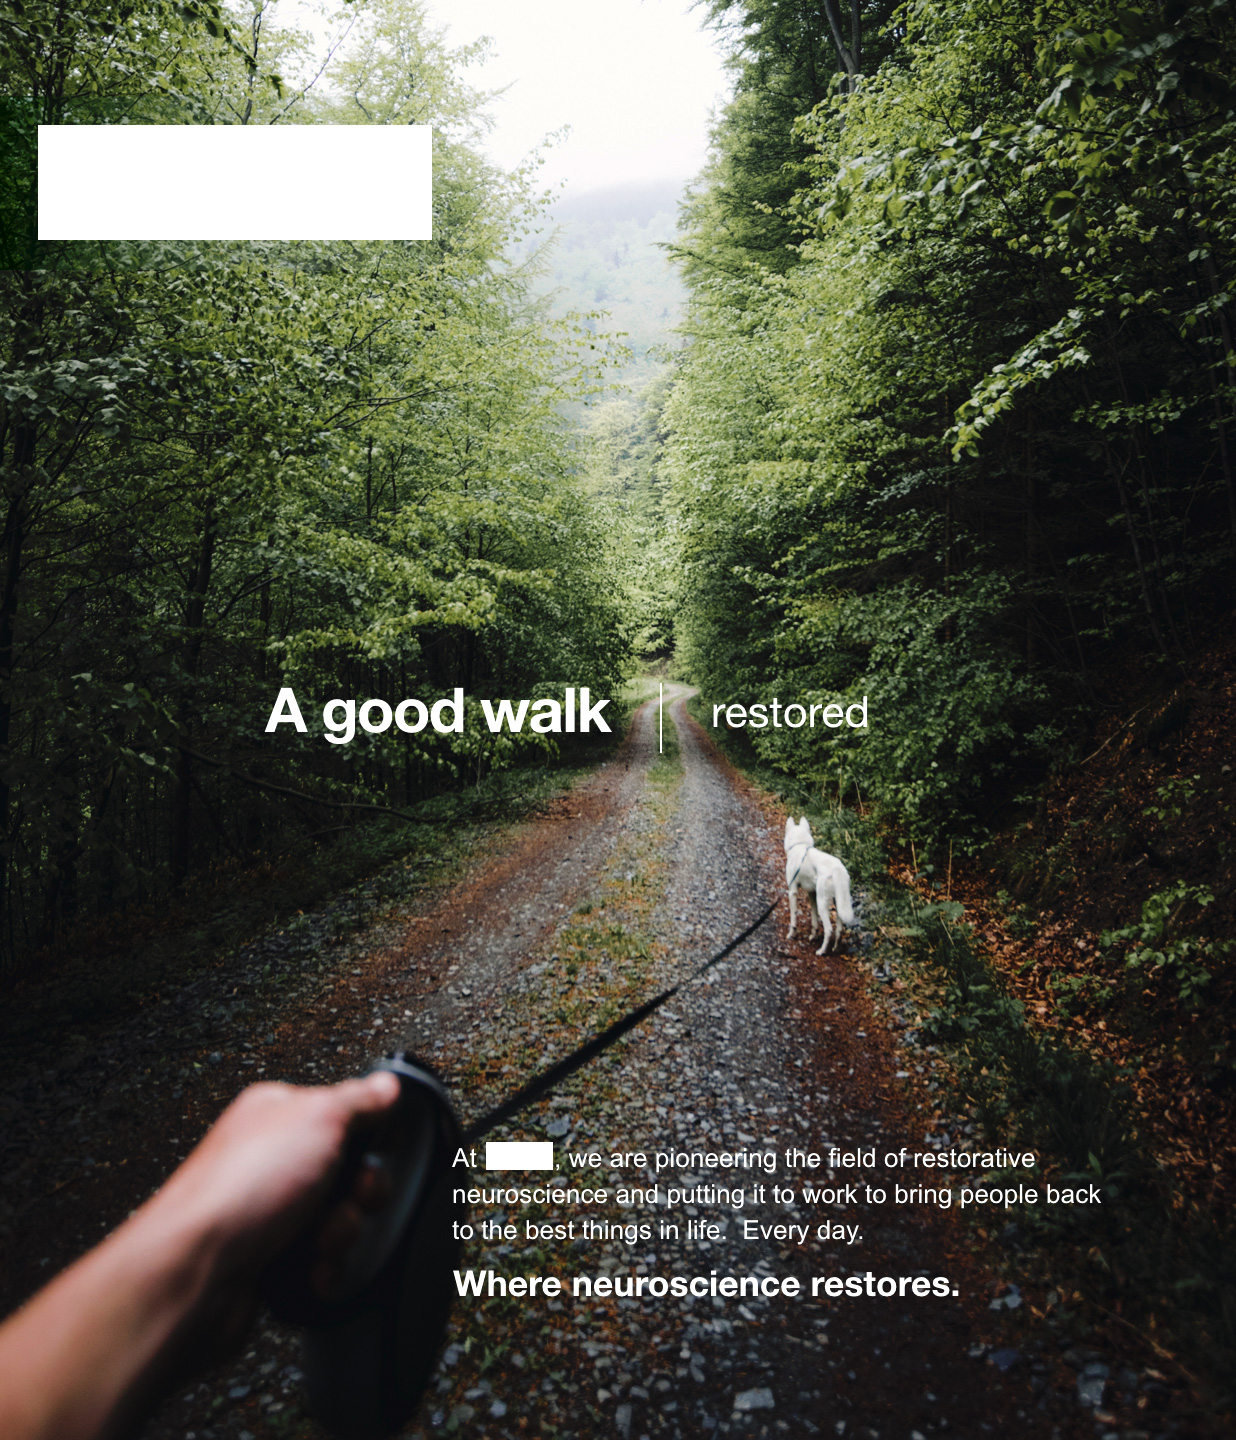 COPY   A good walk | restored  At ▪︎▪︎▪︎ , we are pioneering the field of restorative neuroscience and putting it to work to bring people back to the best things in life. Every day.   TAGLINE   Where neuroscience restores.